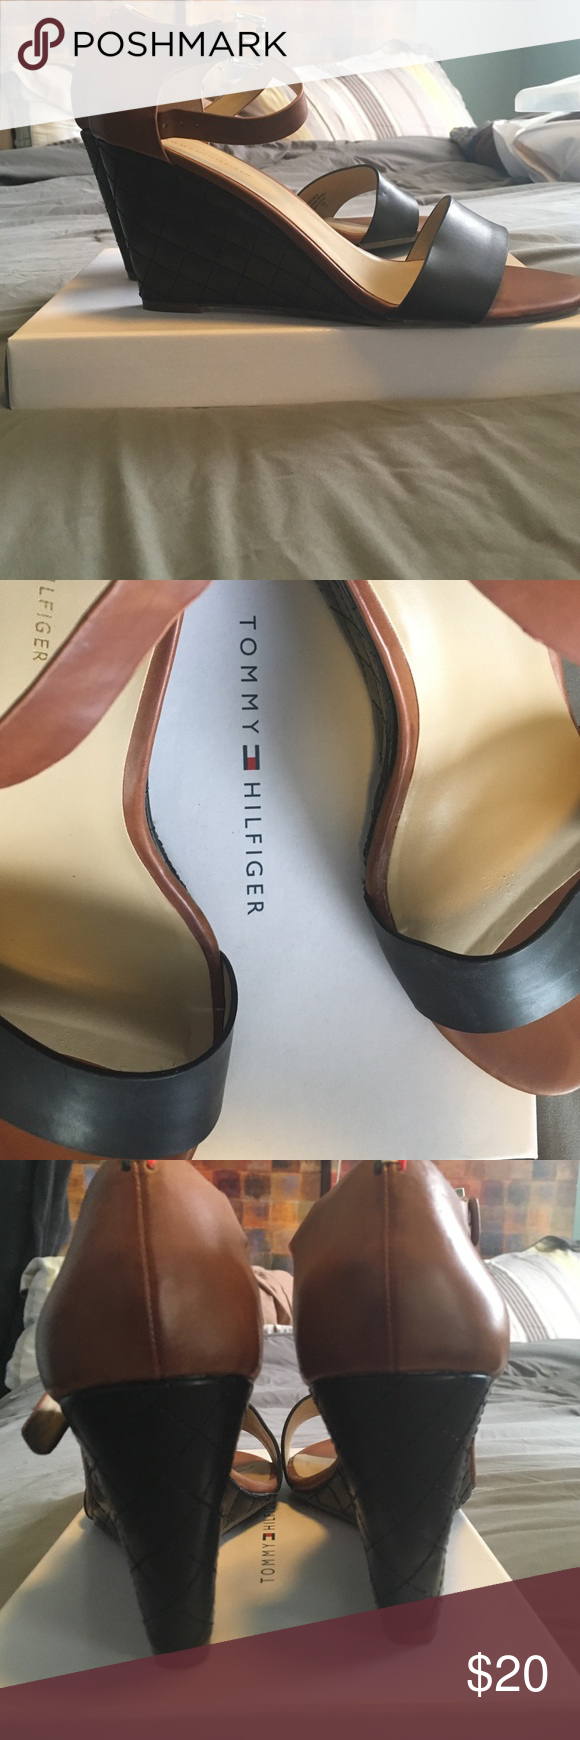 Tommy Hilfiger Wedge Sandal Gently used almost new wedge Sandler! Super comfortable with 3 1/2 inch heel. Comes with box upon request. Ships Daily. Shoes Wedges